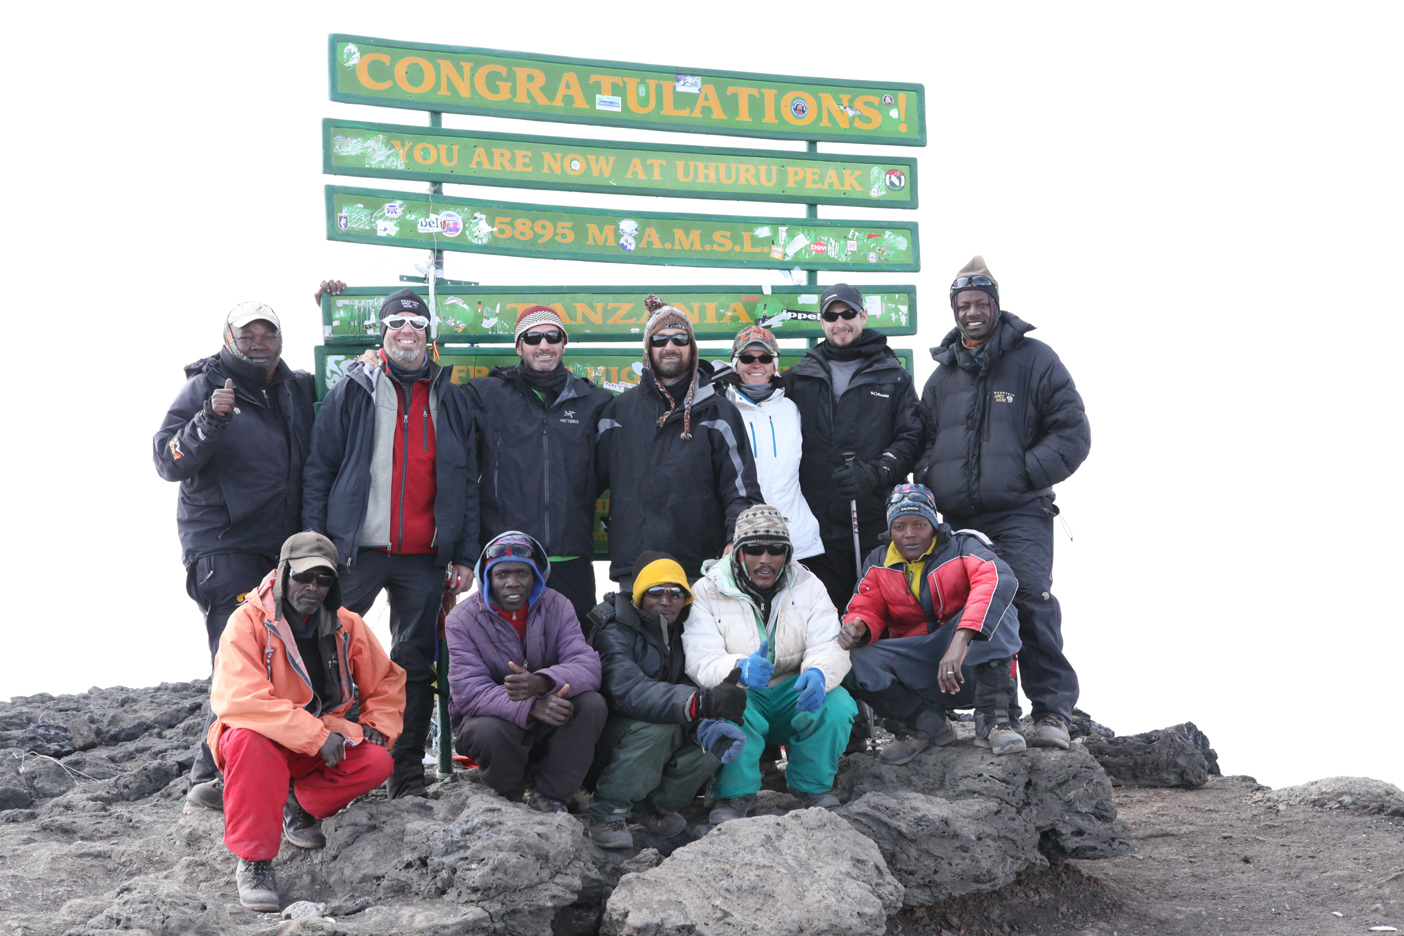 Summit team! Back row L to R: Elias (lead guide), David McDowell, John Chambers, Rob Pavone, Auston Moore, Roger Moore, Gaudence (guide); Front row L to R: Iyubu, Romo, David, Emmanuel, Pasca